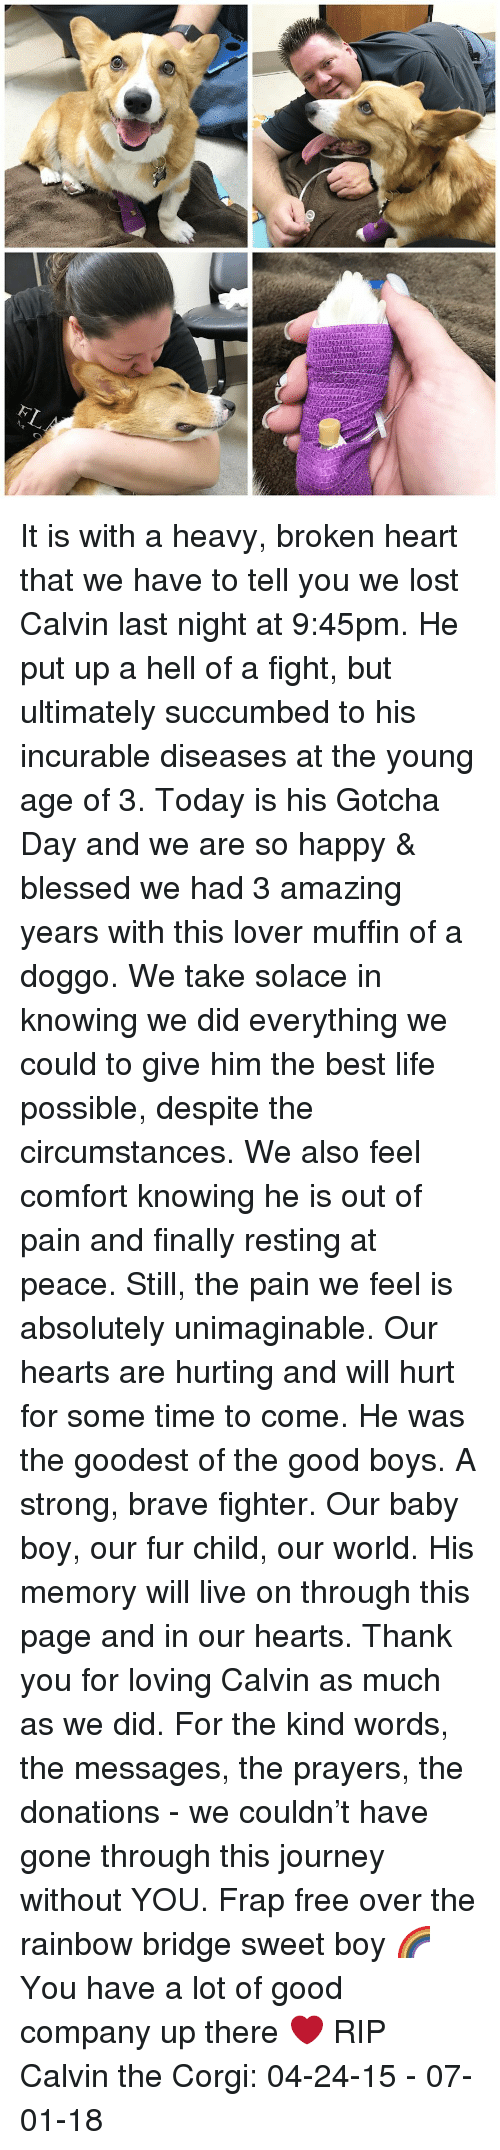 Blessed, Corgi, and Journey: It is with a heavy, broken heart that we have to tell you we lost Calvin last night at 9:45pm. He put up a hell of a fight, but ultimately succumbed to his incurable diseases at the young age of 3. Today is his Gotcha Day and we are so happy & blessed we had 3 amazing years with this lover muffin of a doggo. We take solace in knowing we did everything we could to give him the best life possible, despite the circumstances. We also feel comfort knowing he is out of pain and finally resting at peace. Still, the pain we feel is absolutely unimaginable. Our hearts are hurting and will hurt for some time to come. He was the goodest of the good boys. A strong, brave fighter. Our baby boy, our fur child, our world. His memory will live on through this page and in our hearts. Thank you for loving Calvin as much as we did. For the kind words, the messages, the prayers, the donations - we couldn't have gone through this journey without YOU. Frap free over the rainbow bridge sweet boy 🌈 You have a lot of good company up there ❤️ RIP Calvin the Corgi: 04-24-15 - 07-01-18